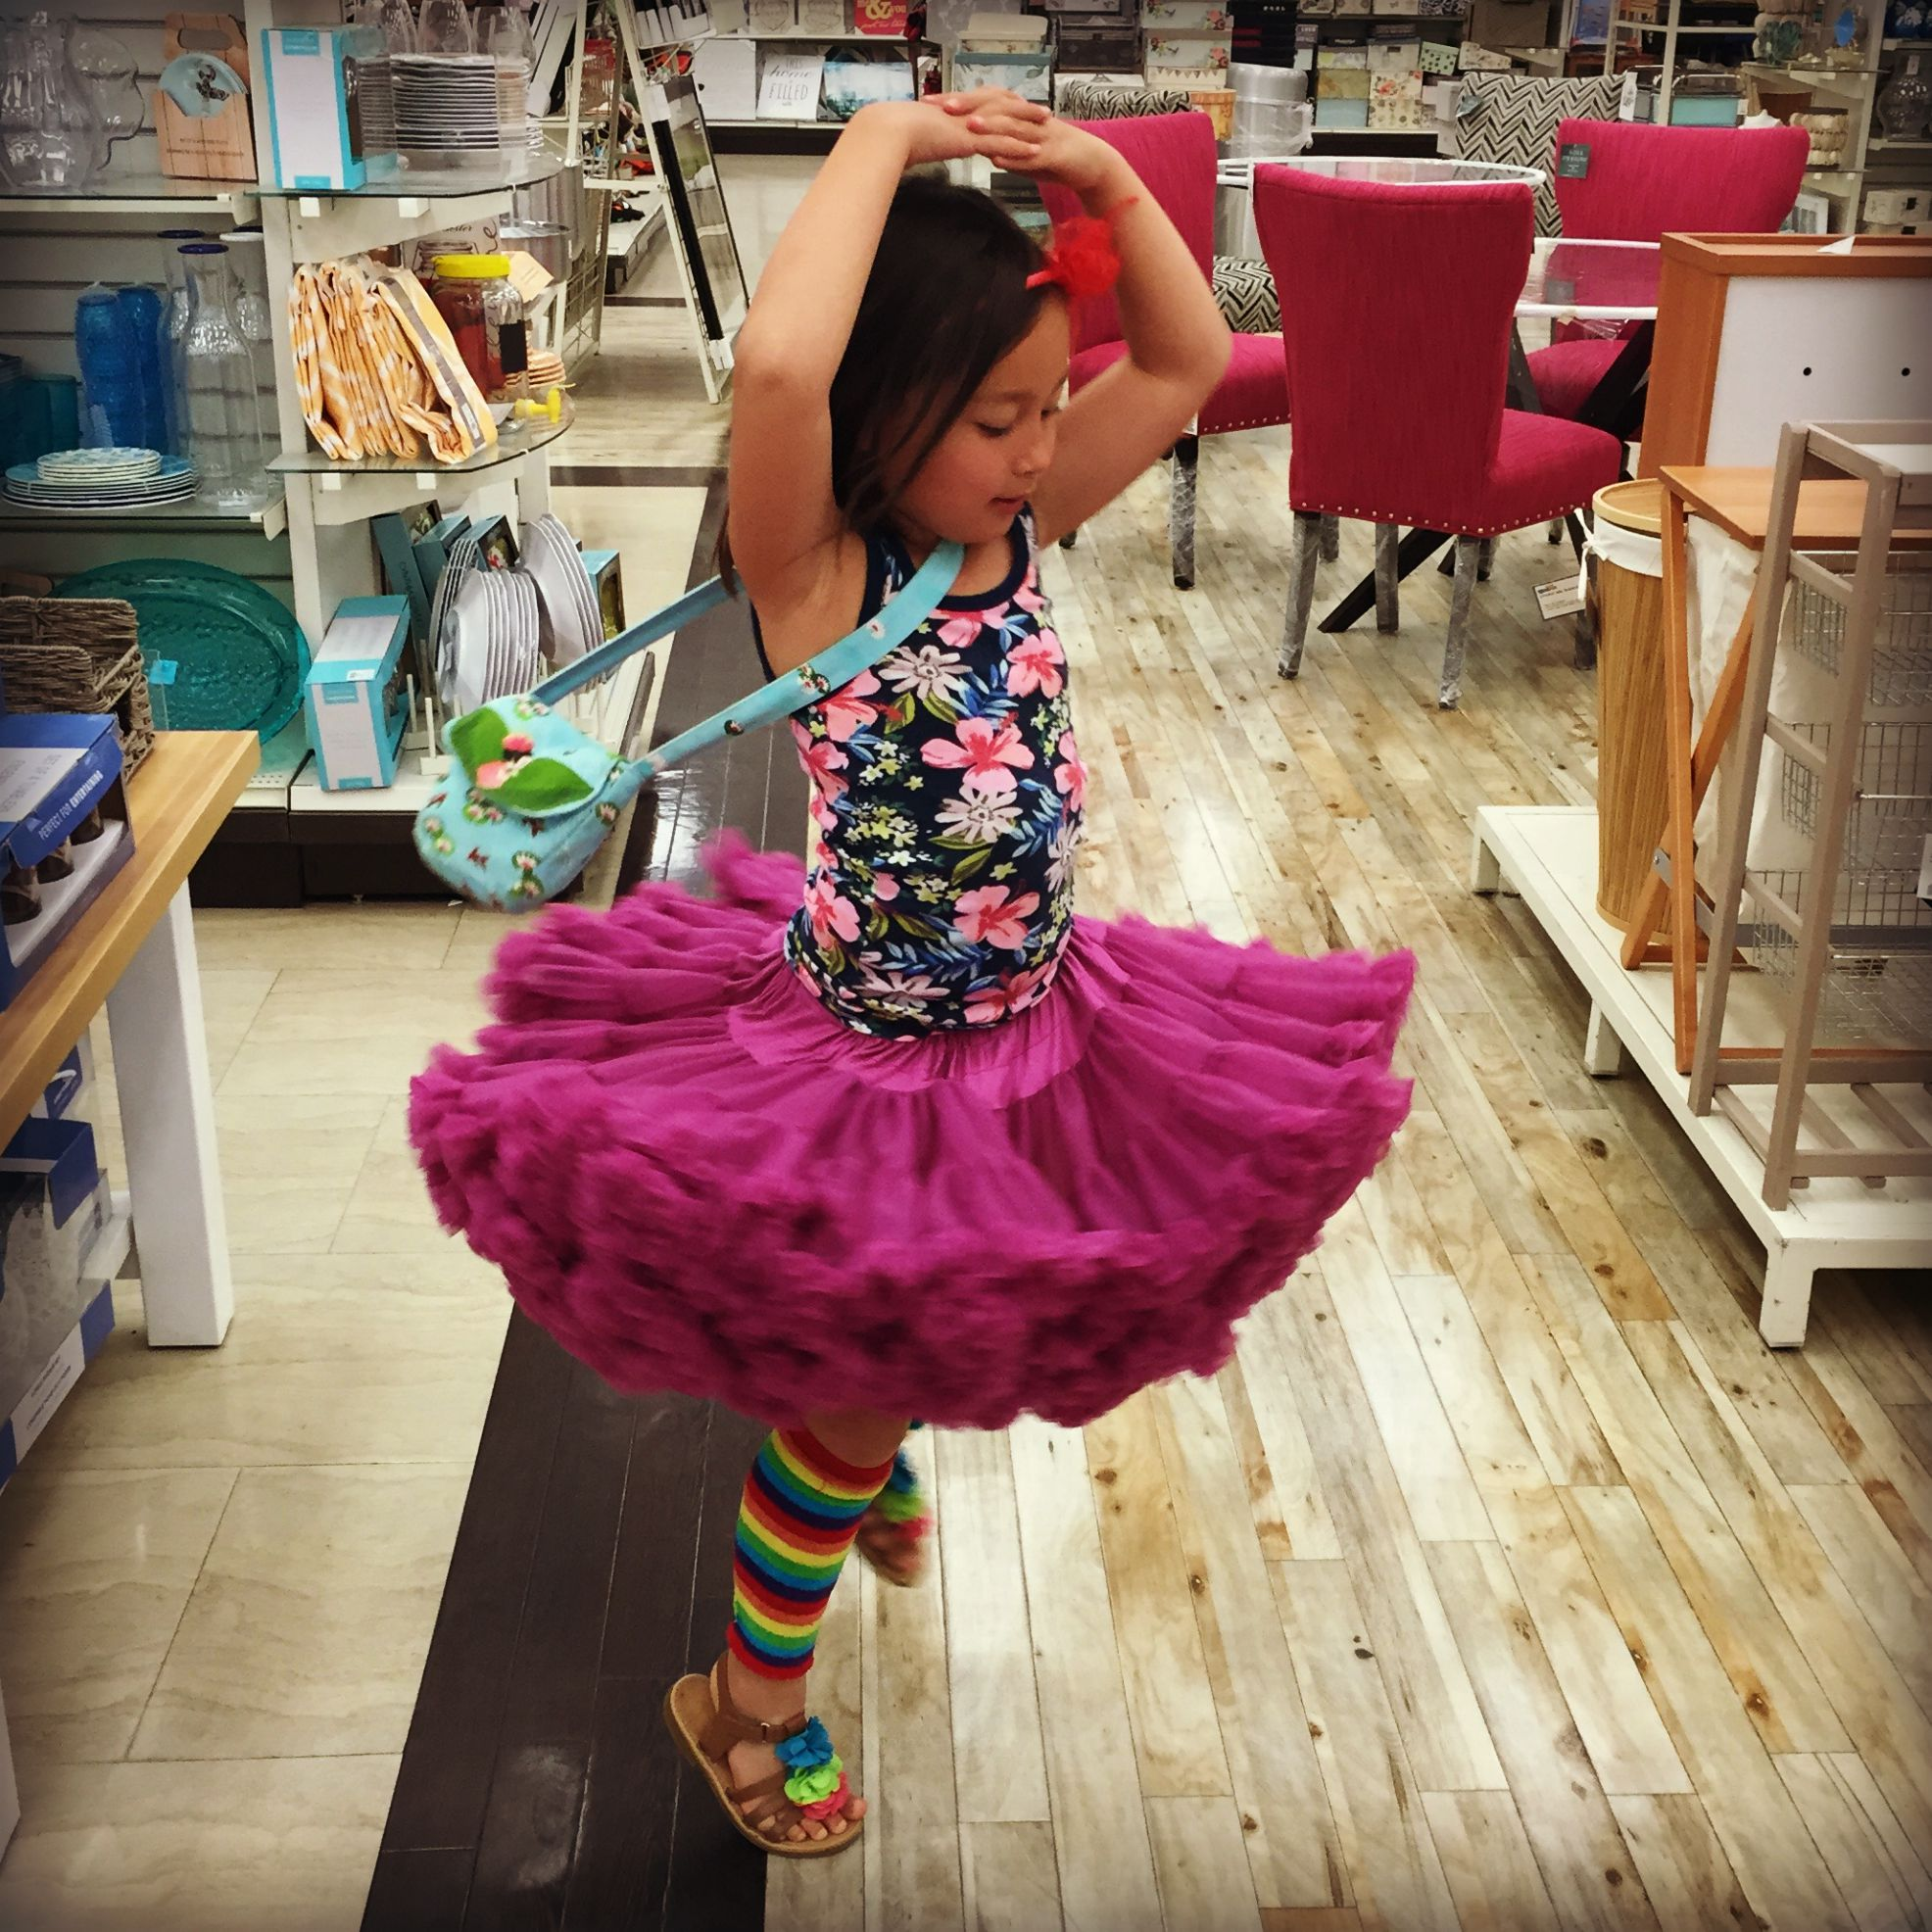 """""""And though she be but little, she is fierce and totally rockin' that frilly tutu in the middle of the store LIKE A BOSS!"""" ~ William Shakespeare"""